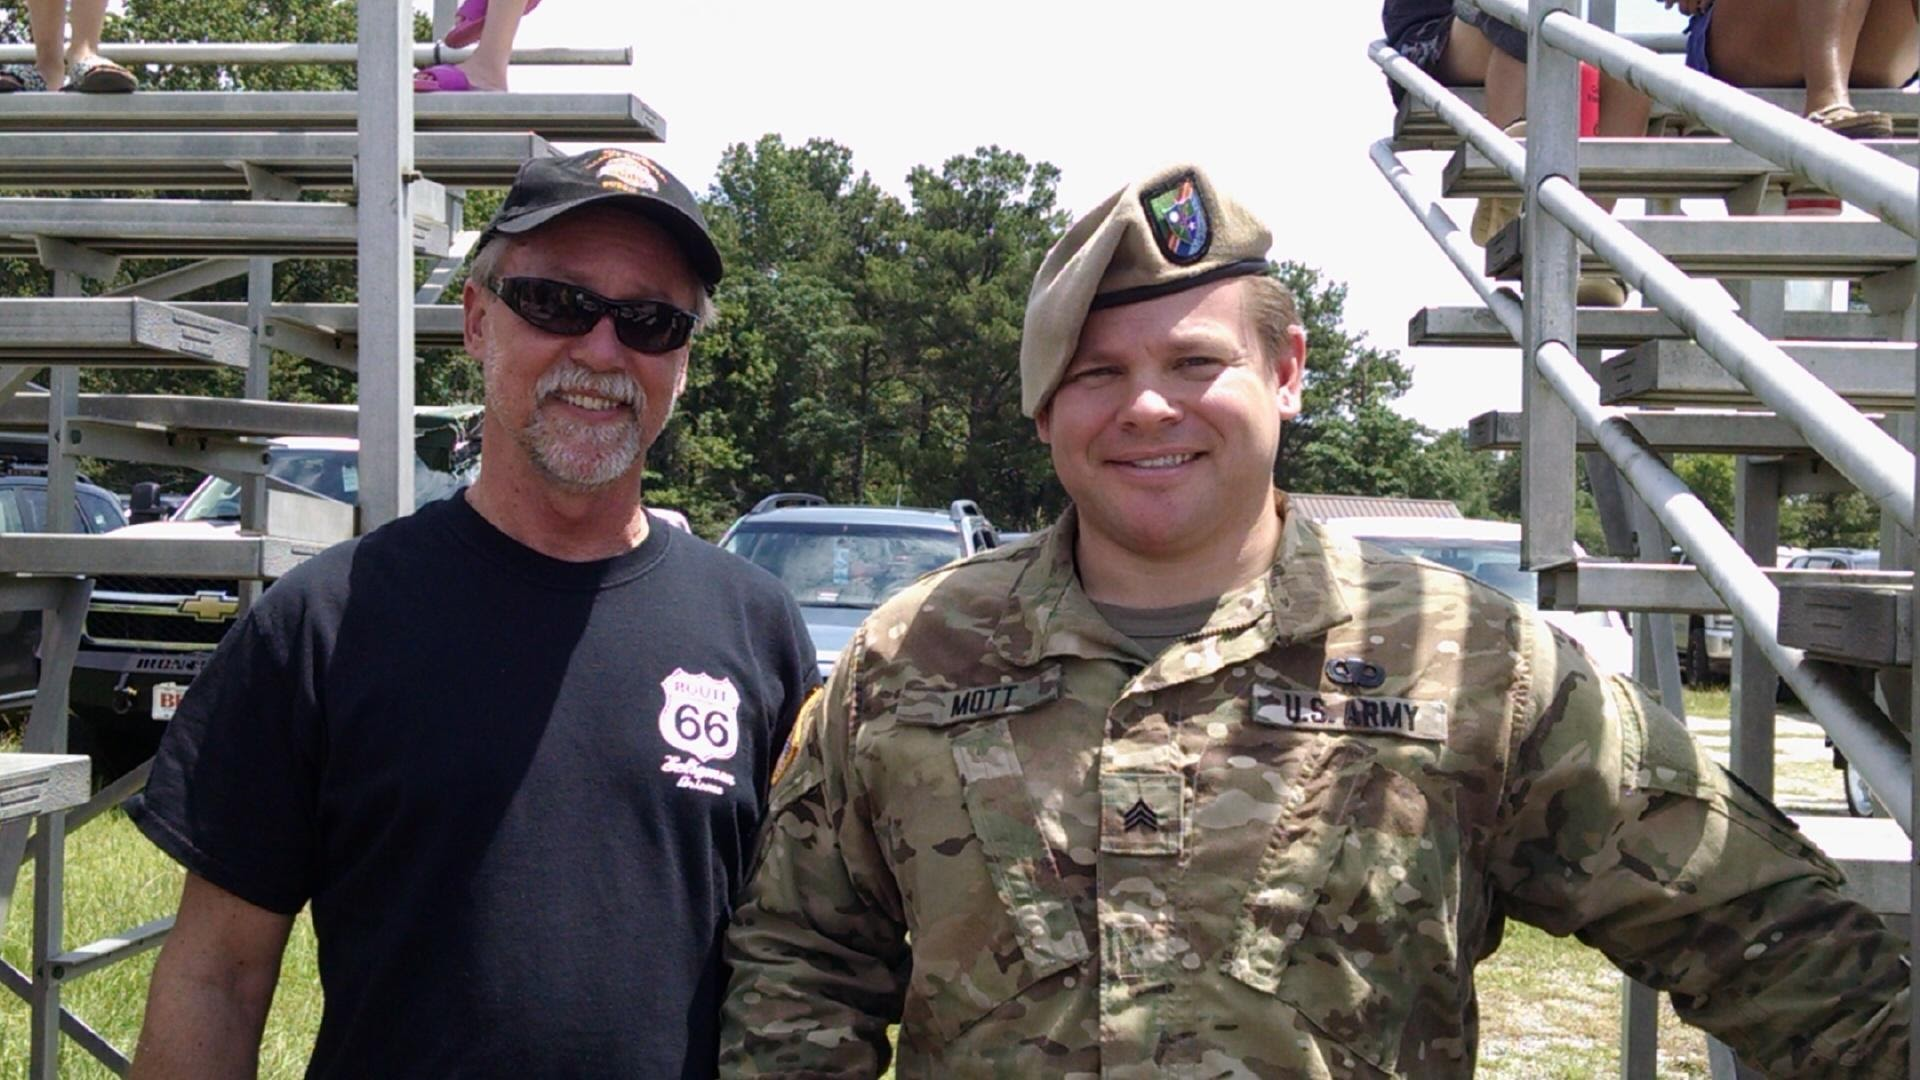 David Mott and son, Nick Mott, U.S. Army Ranger.